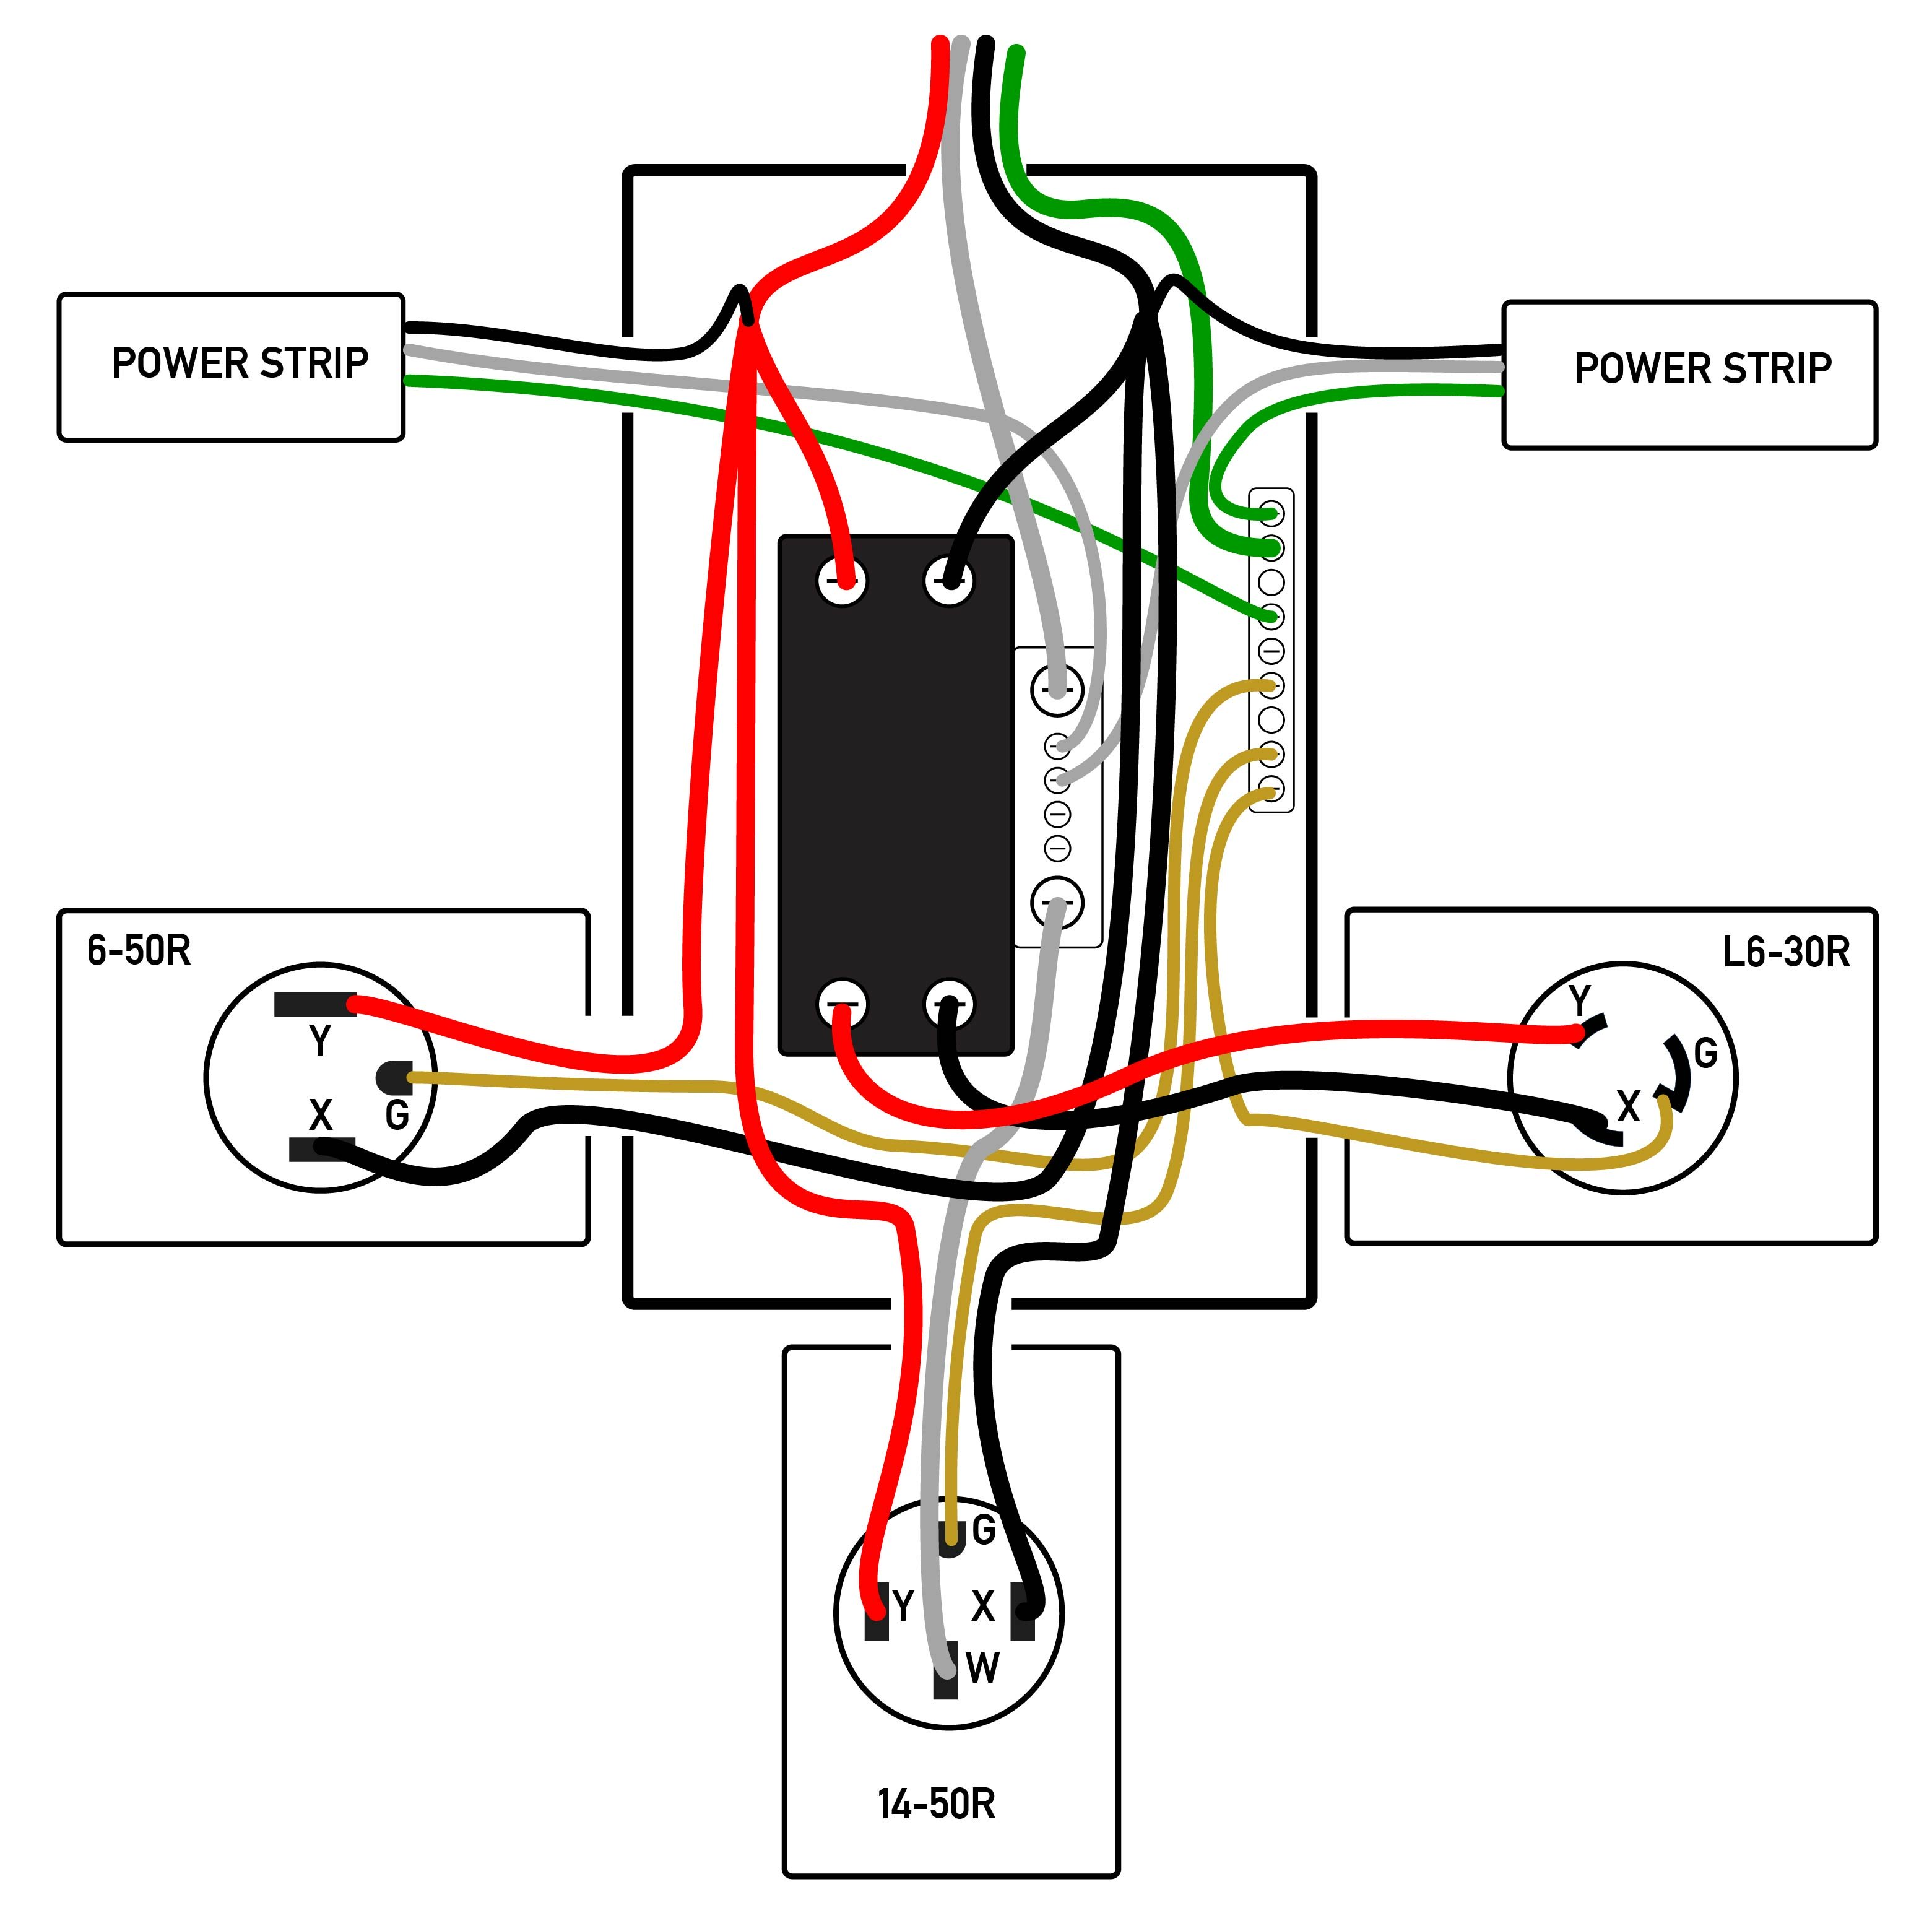 Welding 220V Welder Plug Wiring Diagram from static-cdn.imageservice.cloud